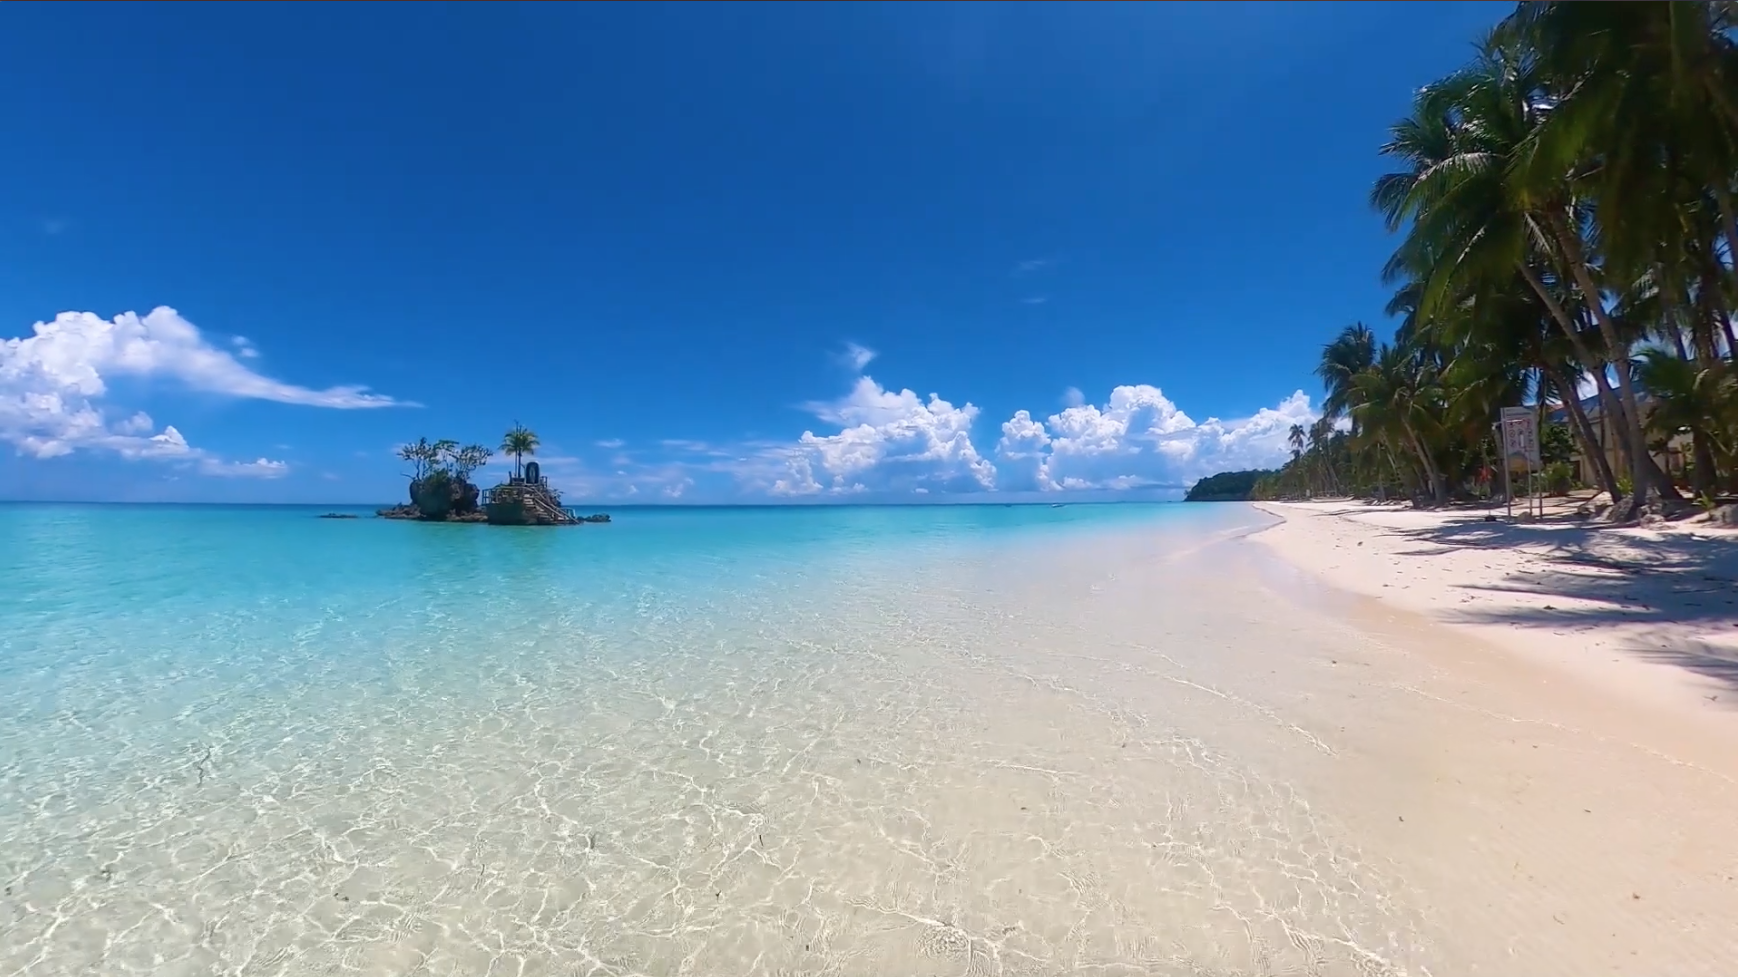 Few tourists visit Boracay on first day of reopening, Malay mayor says